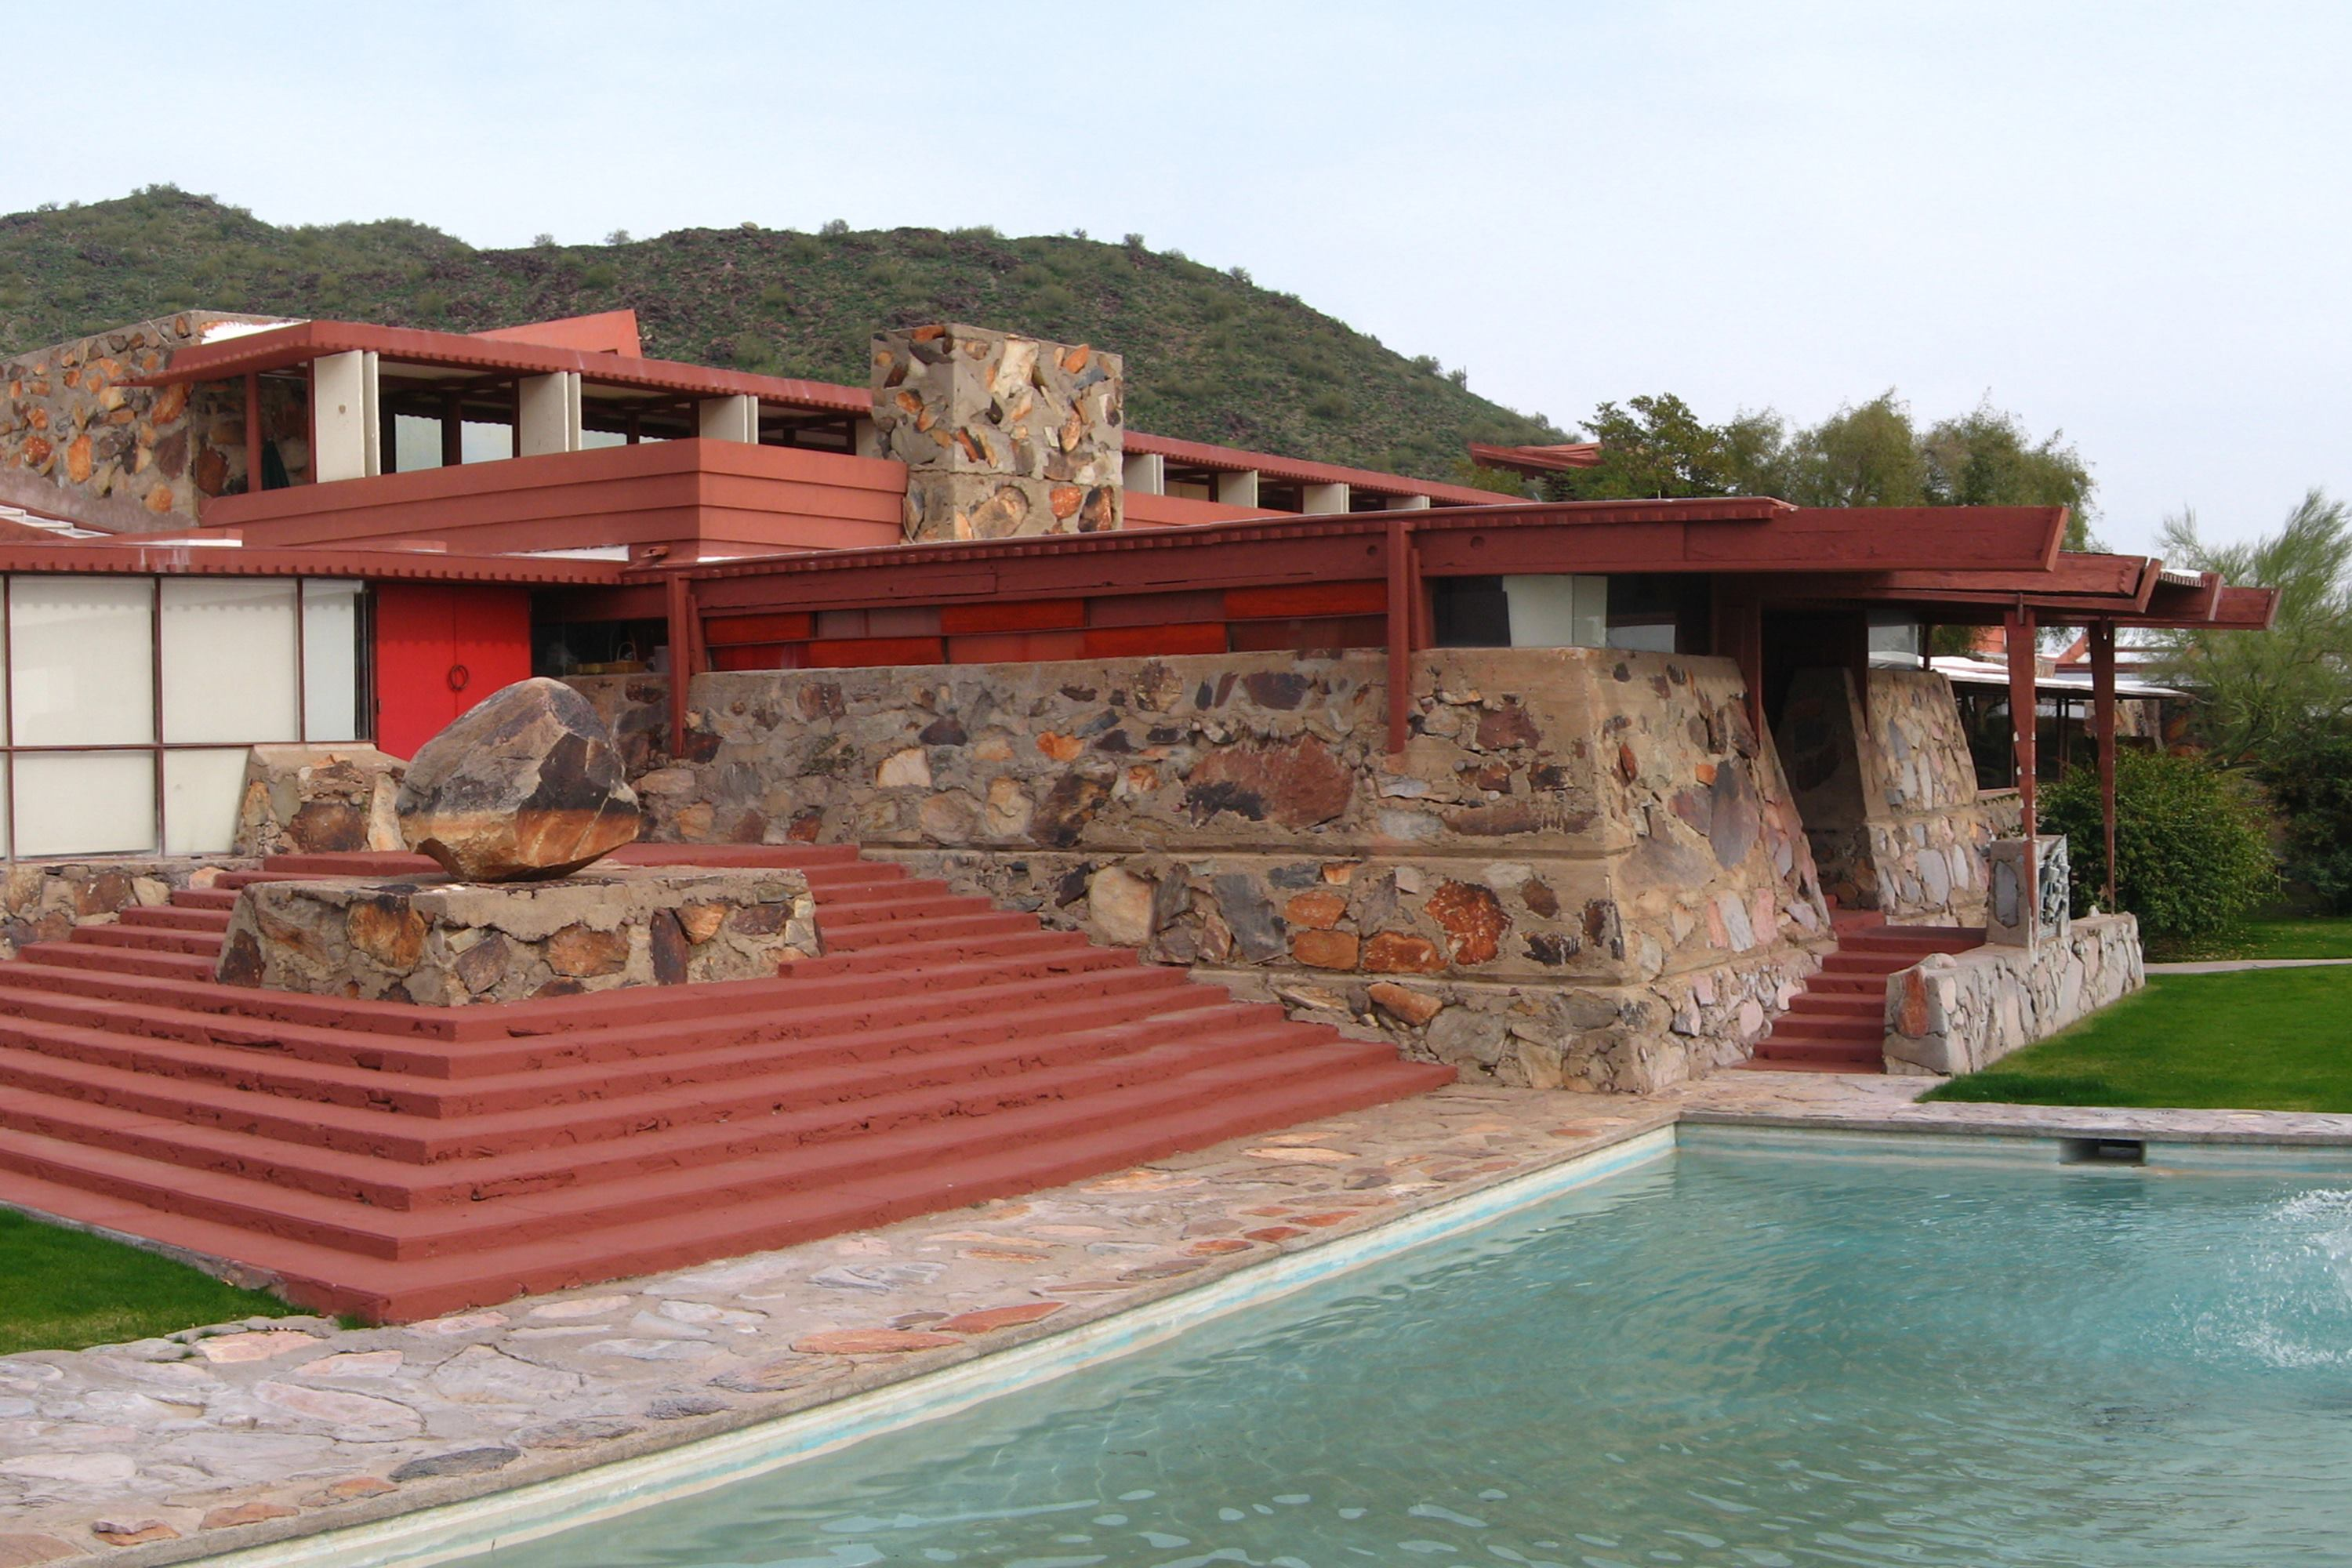 Frank lloyd wright school of architecture could lose - Frank lloyd wright architecture ...